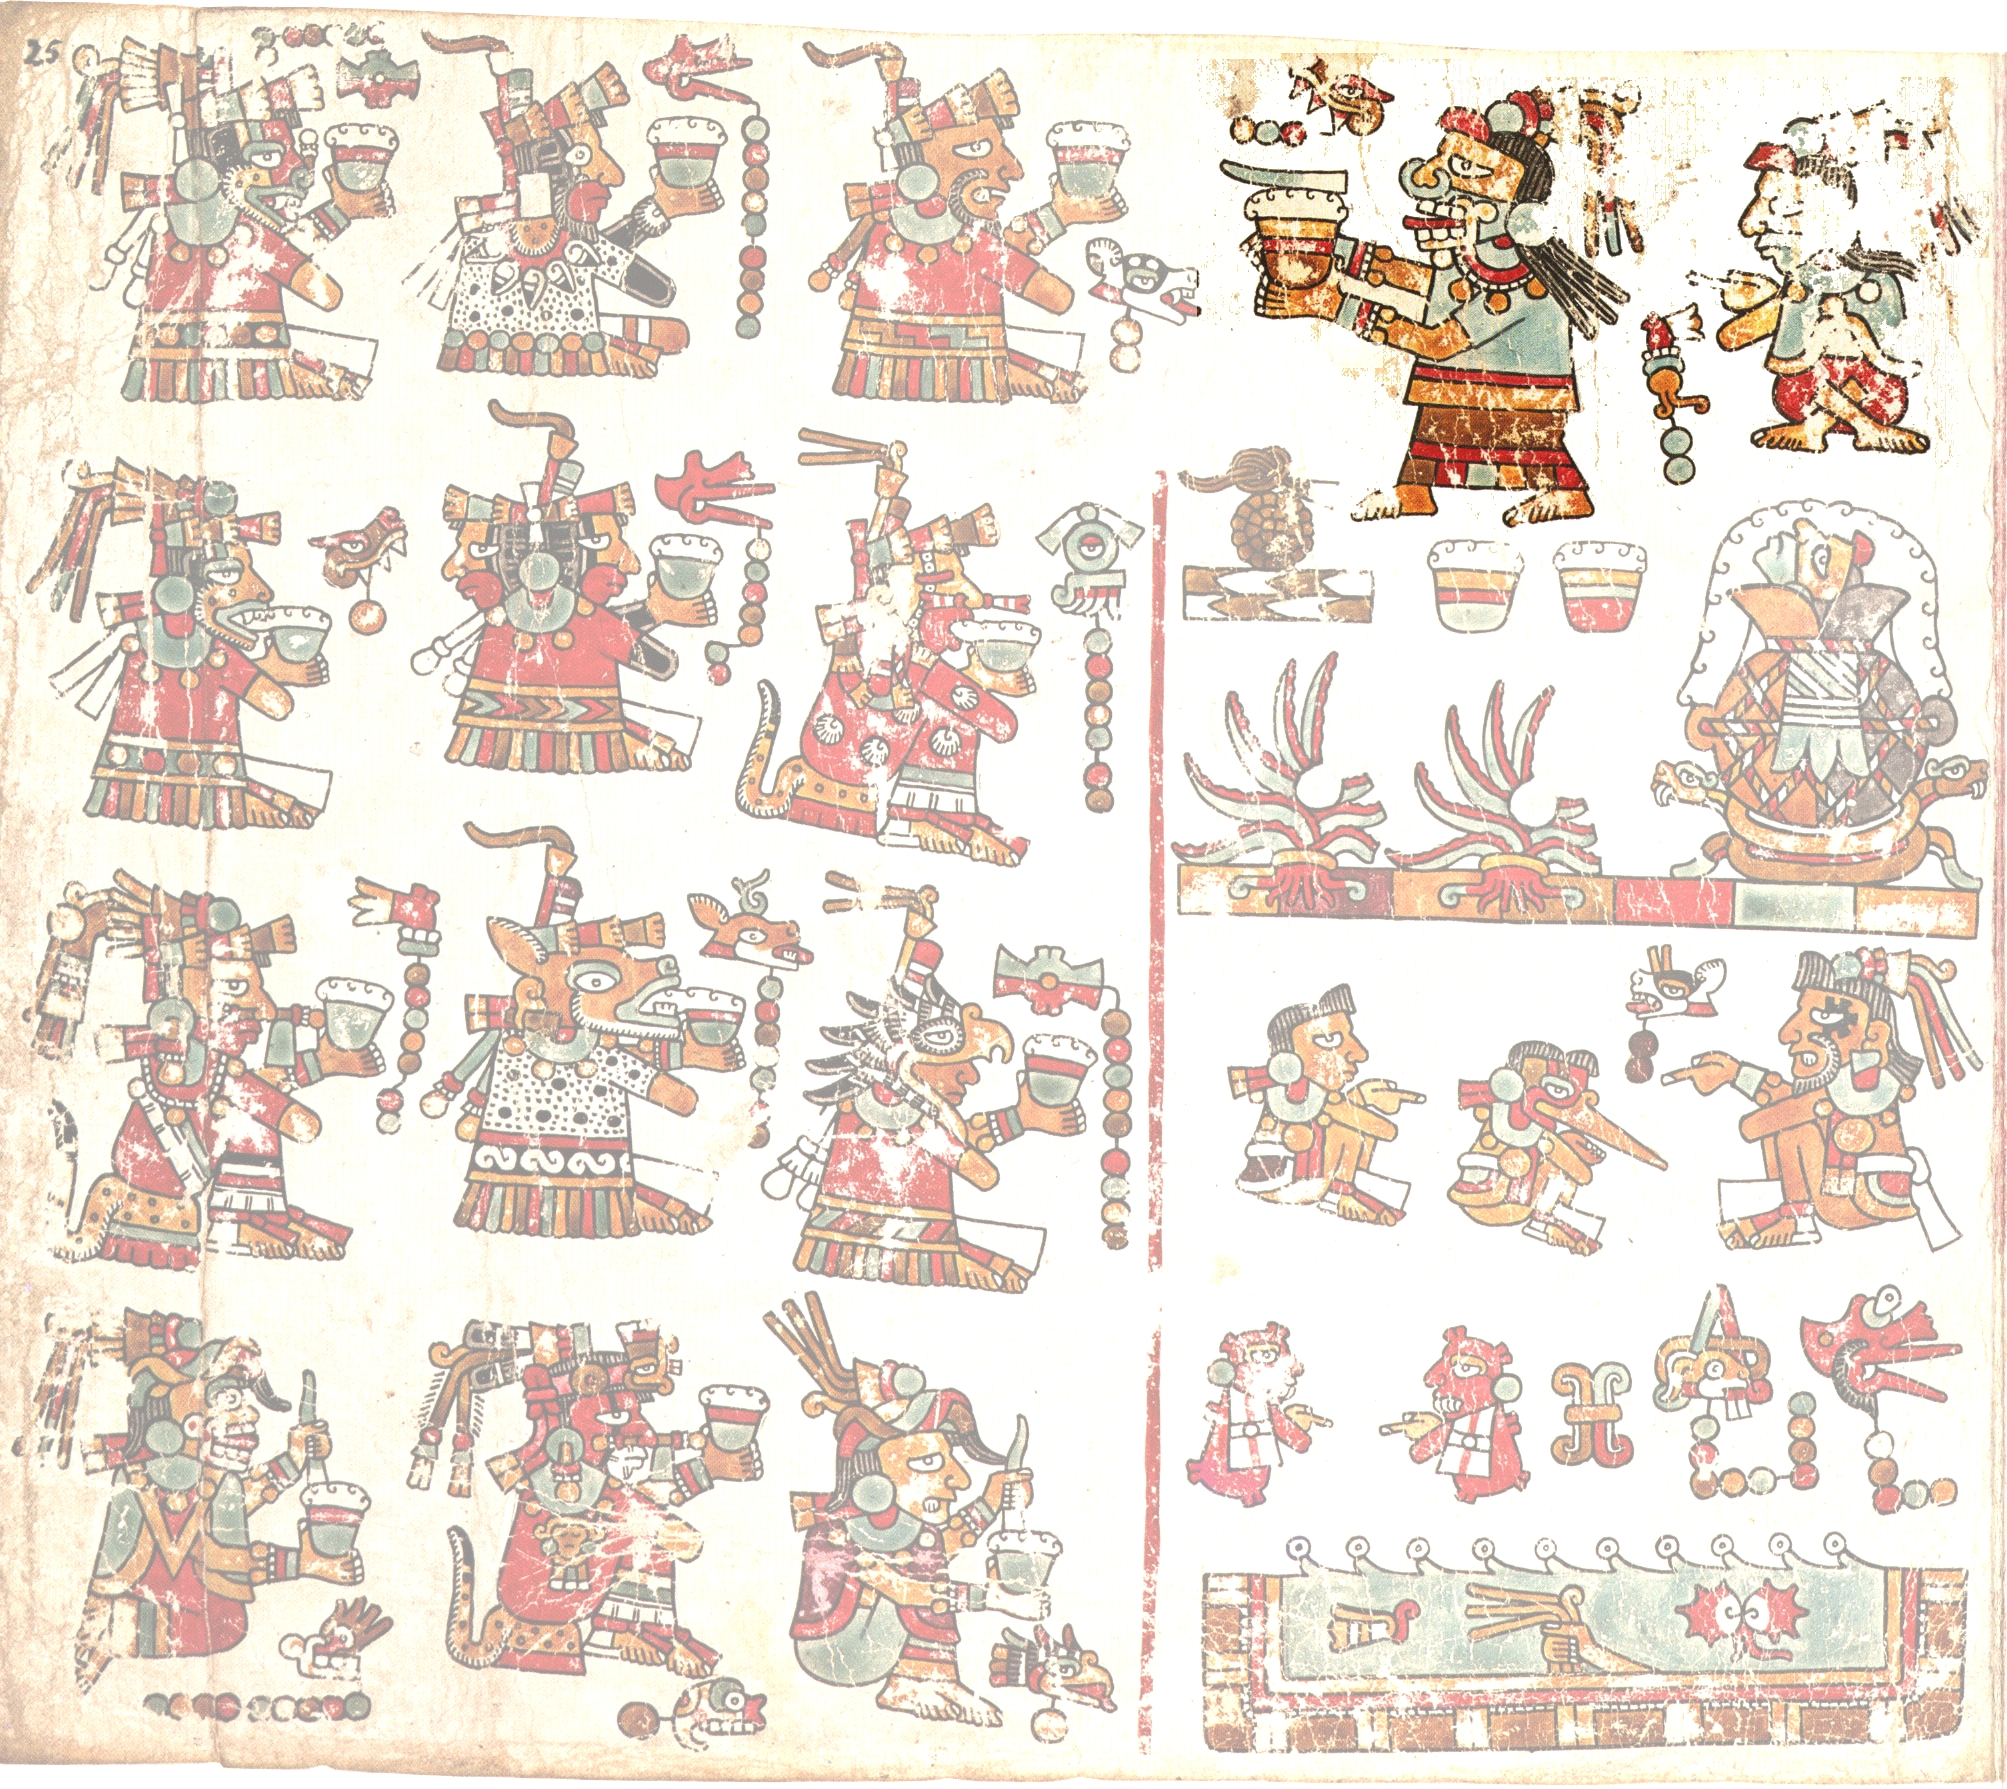 FIGURE 25. Page 25 of the Codex Vienna.